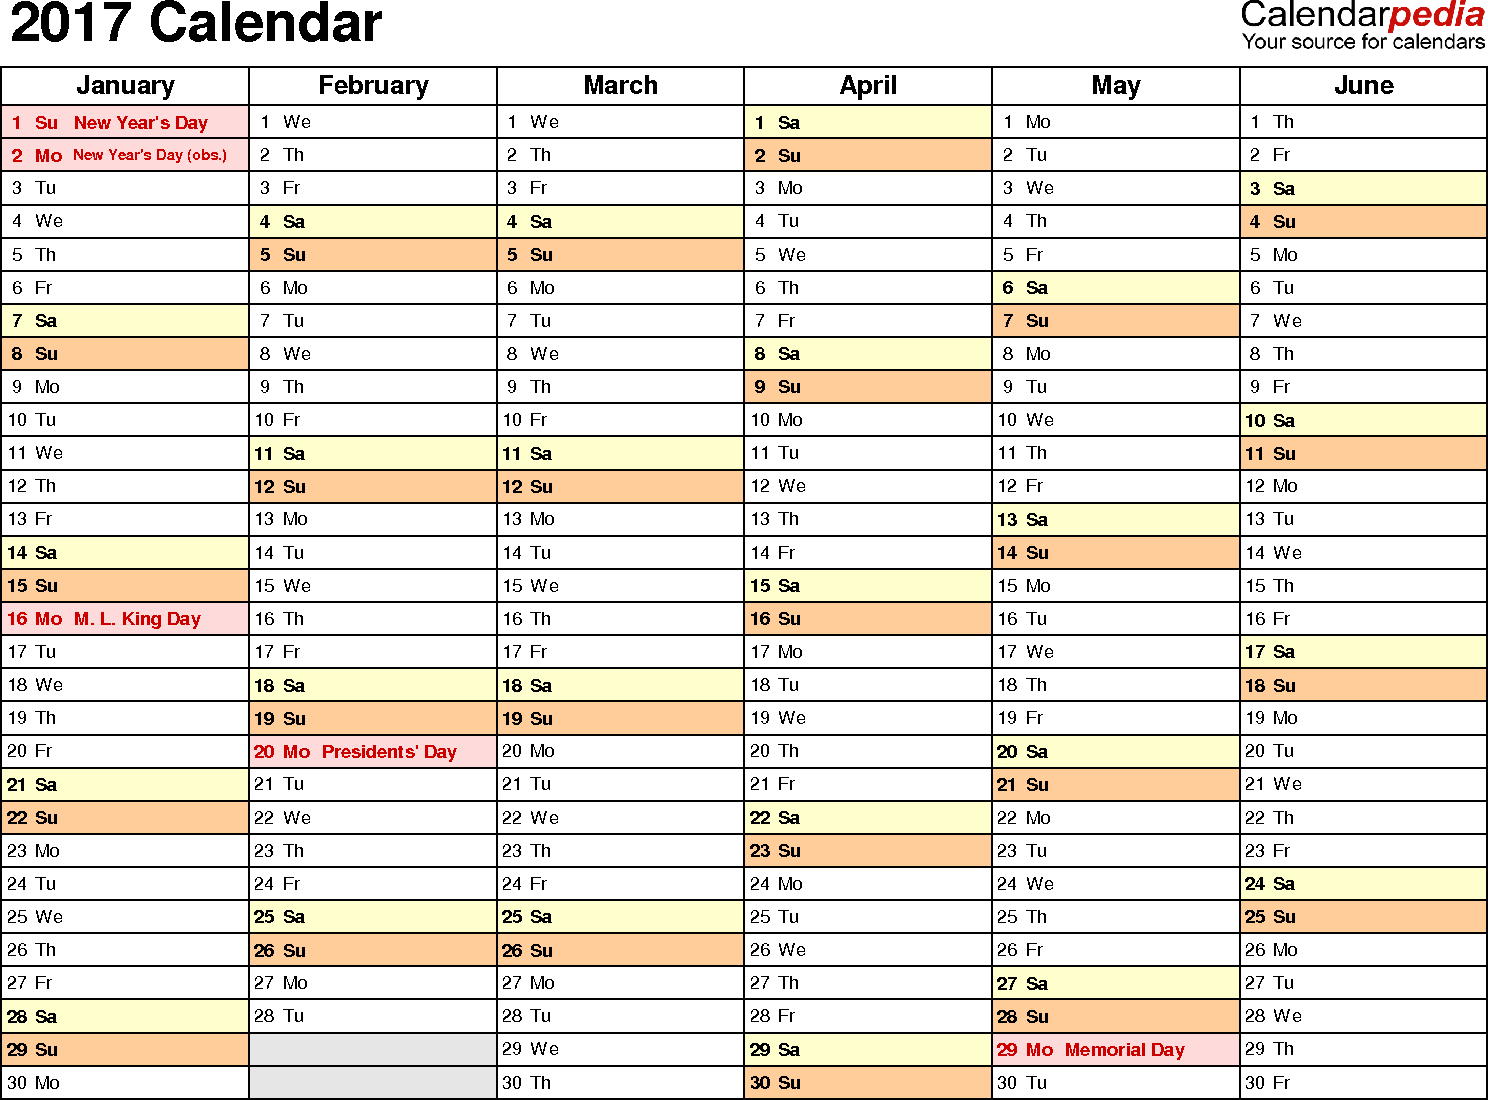 Ediblewildsus  Pleasing  Calendar  Download  Free Printable Excel Templates Xls With Interesting Template   Calendar For Excel Months Horizontally  Pages Landscape Orientation With Lovely Excel  Password Protect Also Excel C In Addition Budget In Excel And Make Line Graph In Excel As Well As Excel Lookup Exact Match Additionally Tools Menu In Excel From Calendarpediacom With Ediblewildsus  Interesting  Calendar  Download  Free Printable Excel Templates Xls With Lovely Template   Calendar For Excel Months Horizontally  Pages Landscape Orientation And Pleasing Excel  Password Protect Also Excel C In Addition Budget In Excel From Calendarpediacom